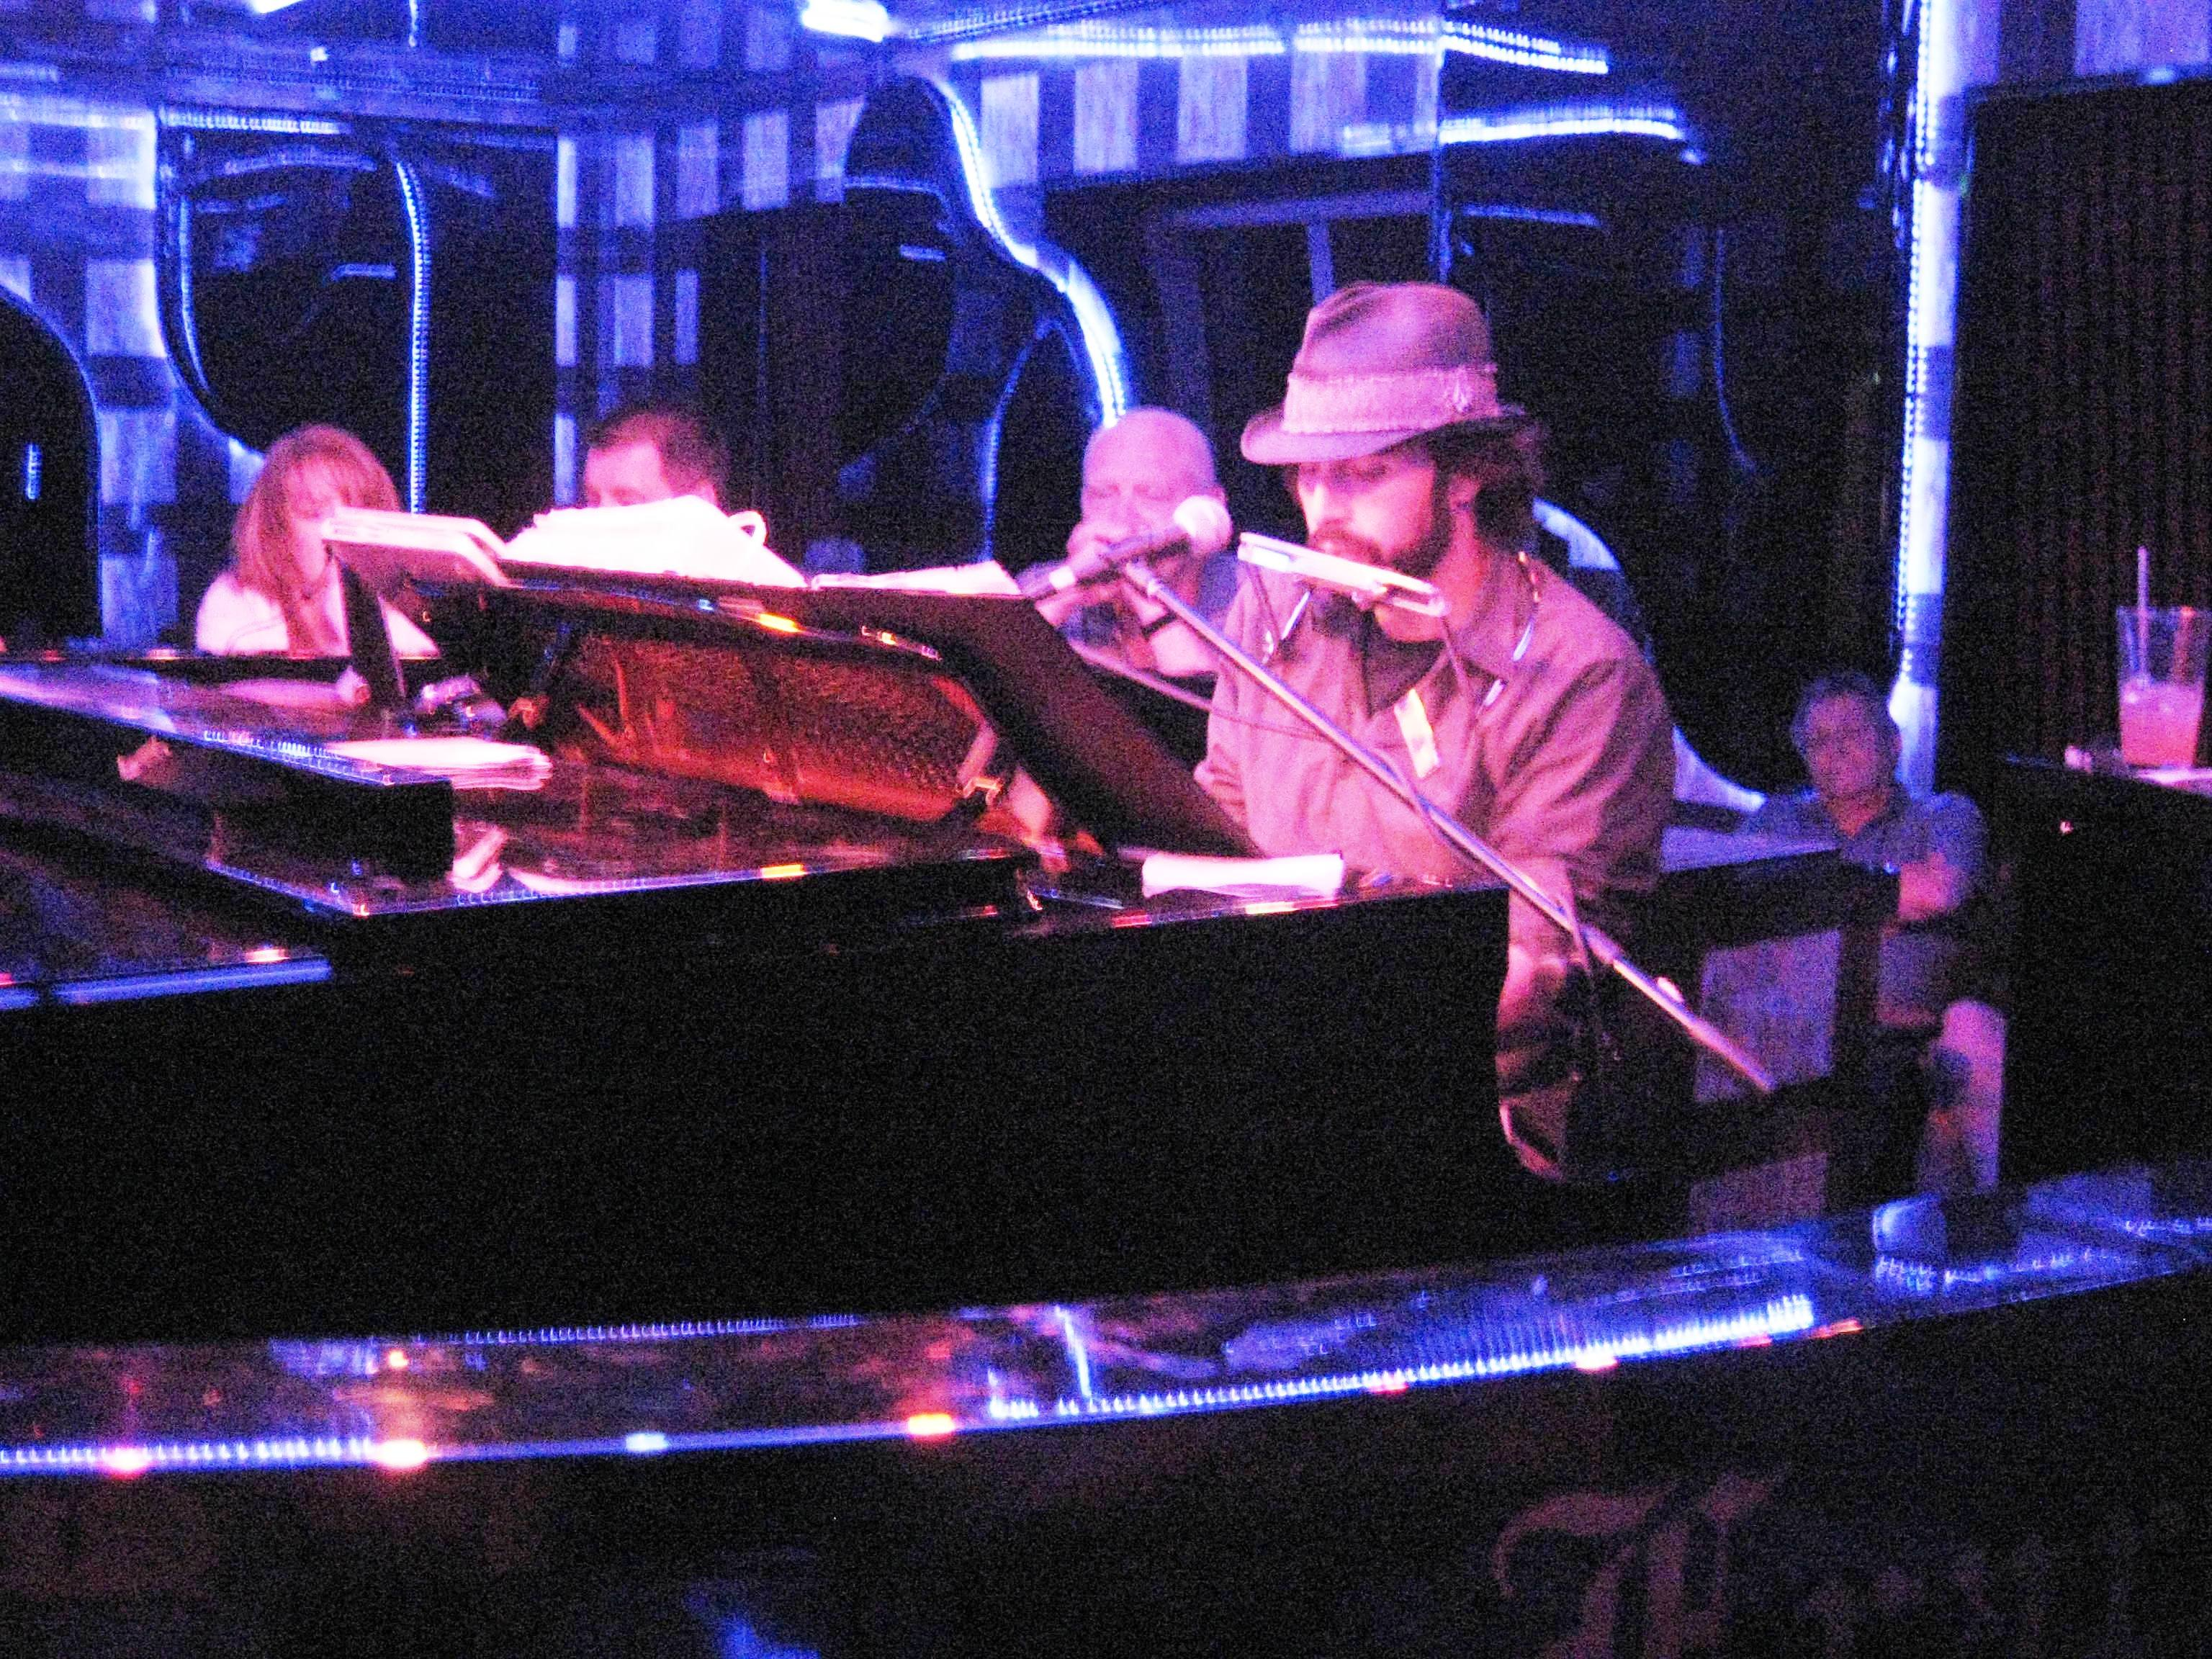 greg-with-guests-enjoying-his-entertainment-in-the-piano-bar-see-if-you-can-find-mickey-his-newly-appointed-manager